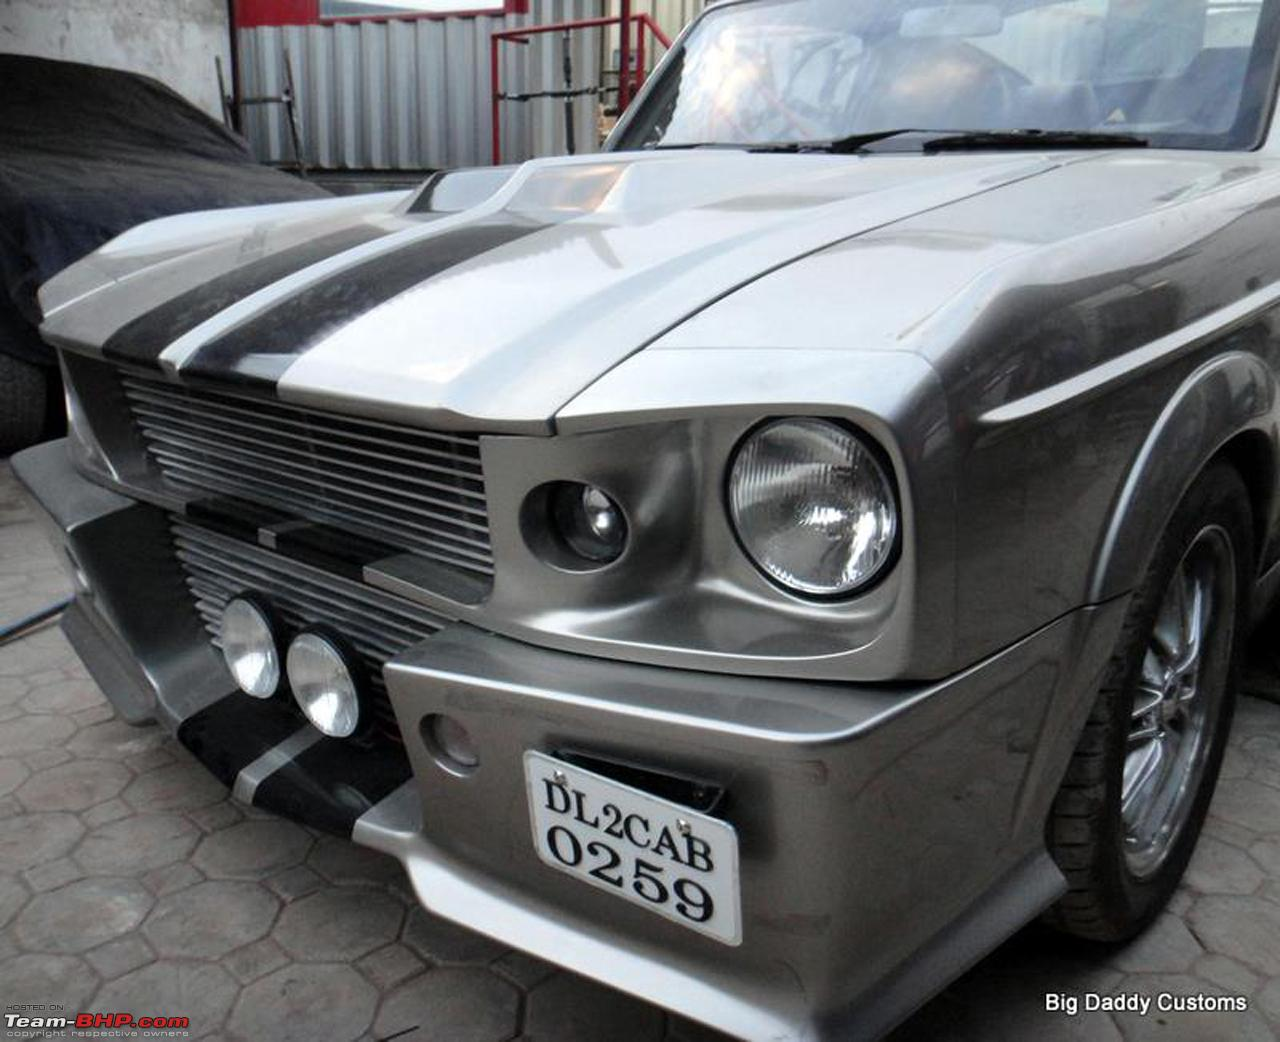 Mustang Eleanor Replica based on the Chevy Optra-00elenot.jpg